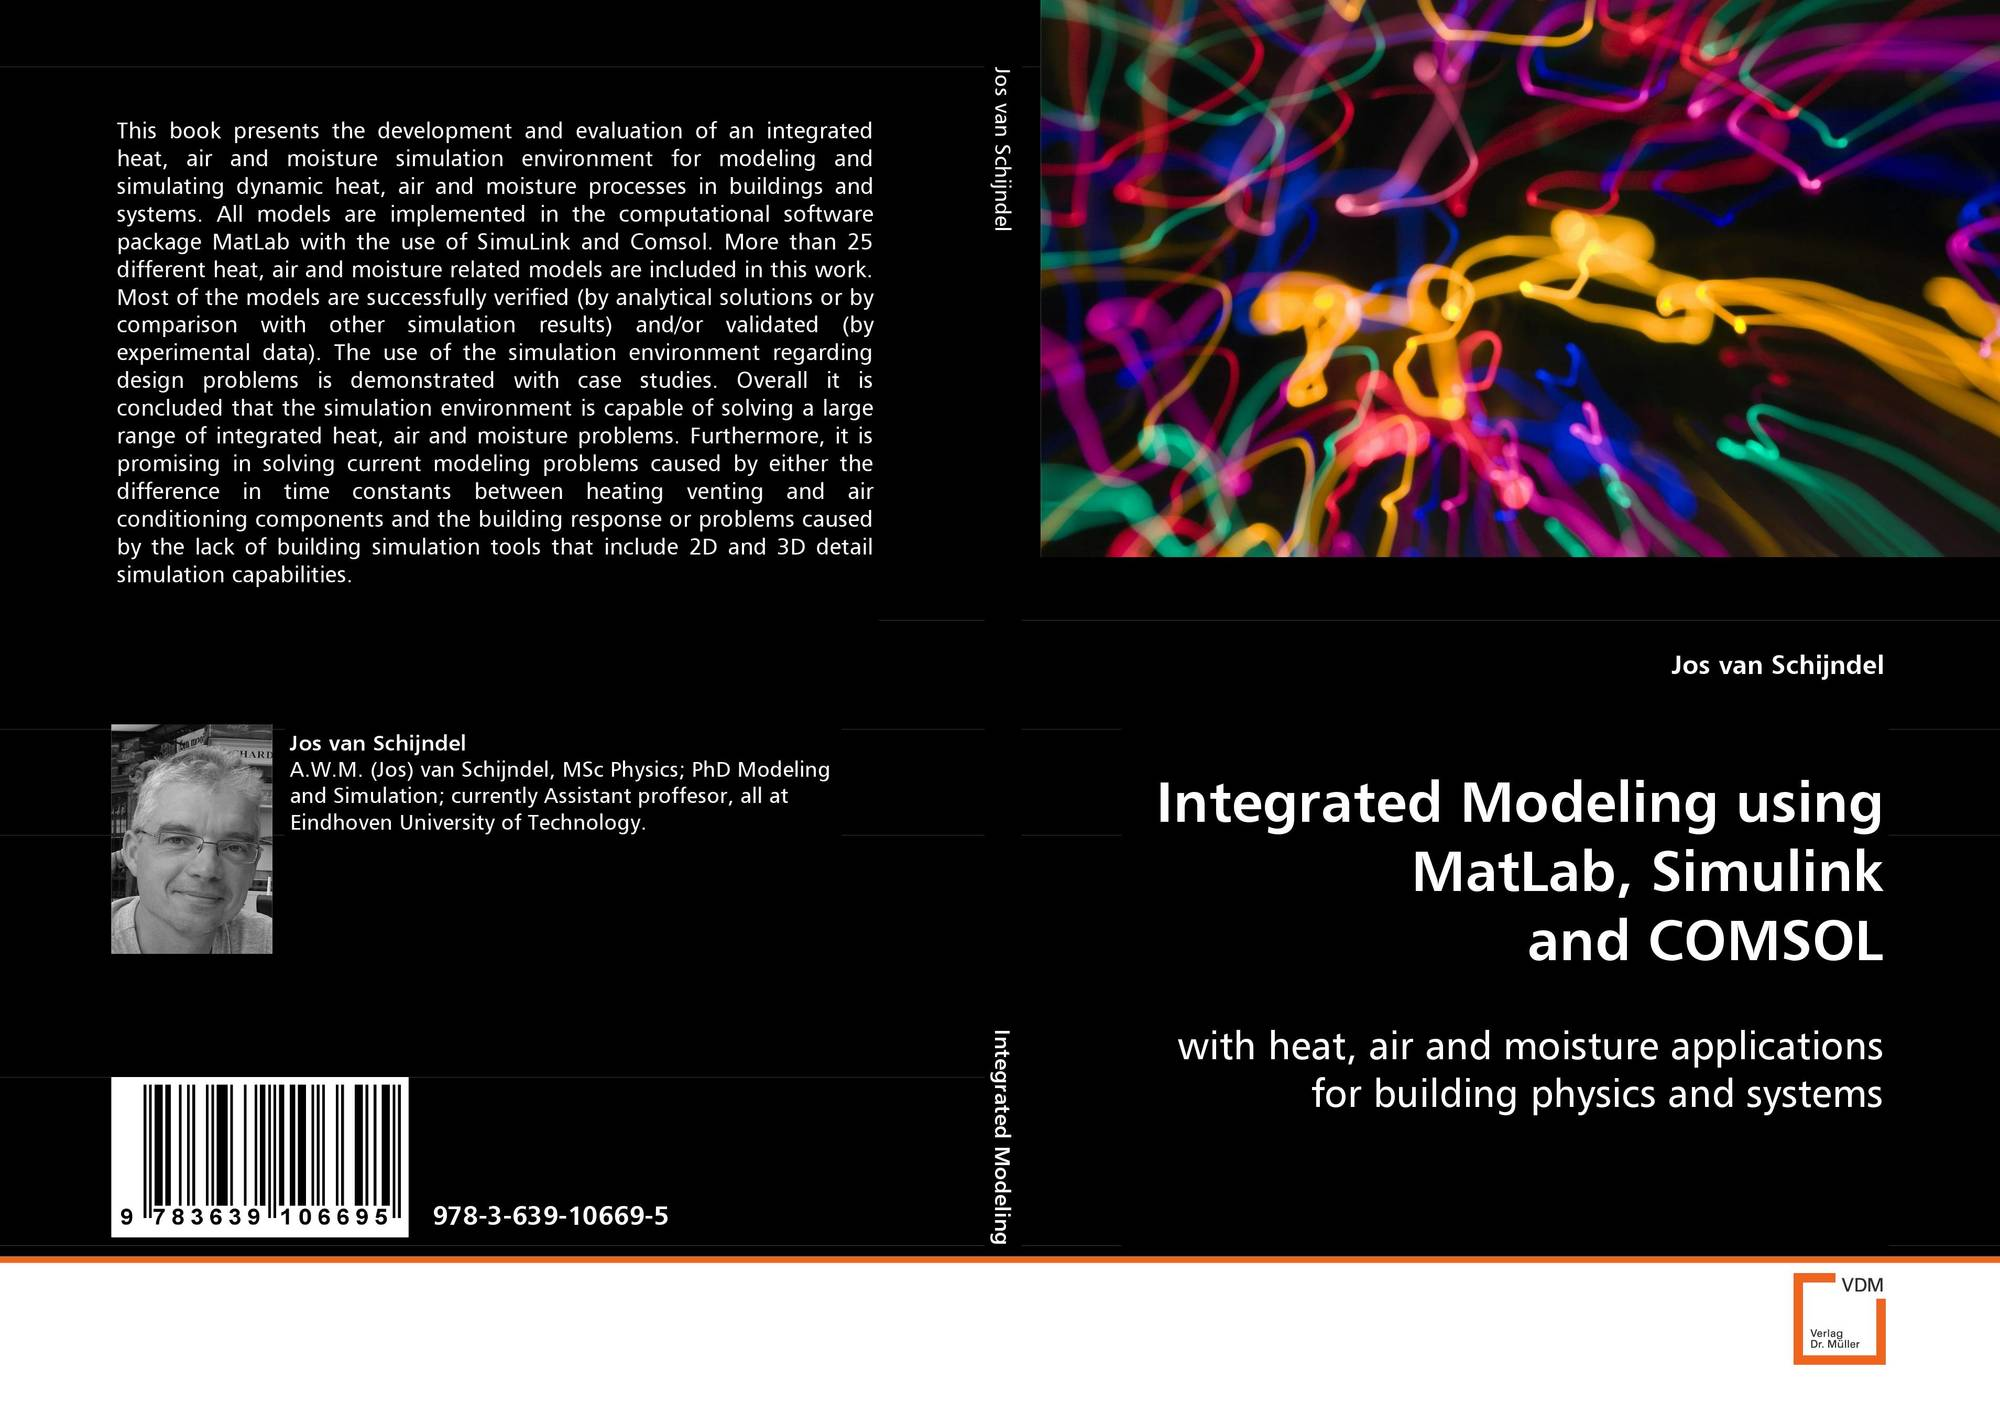 Integrated Modeling using MatLab, Simulink and COMSOL, 978-3